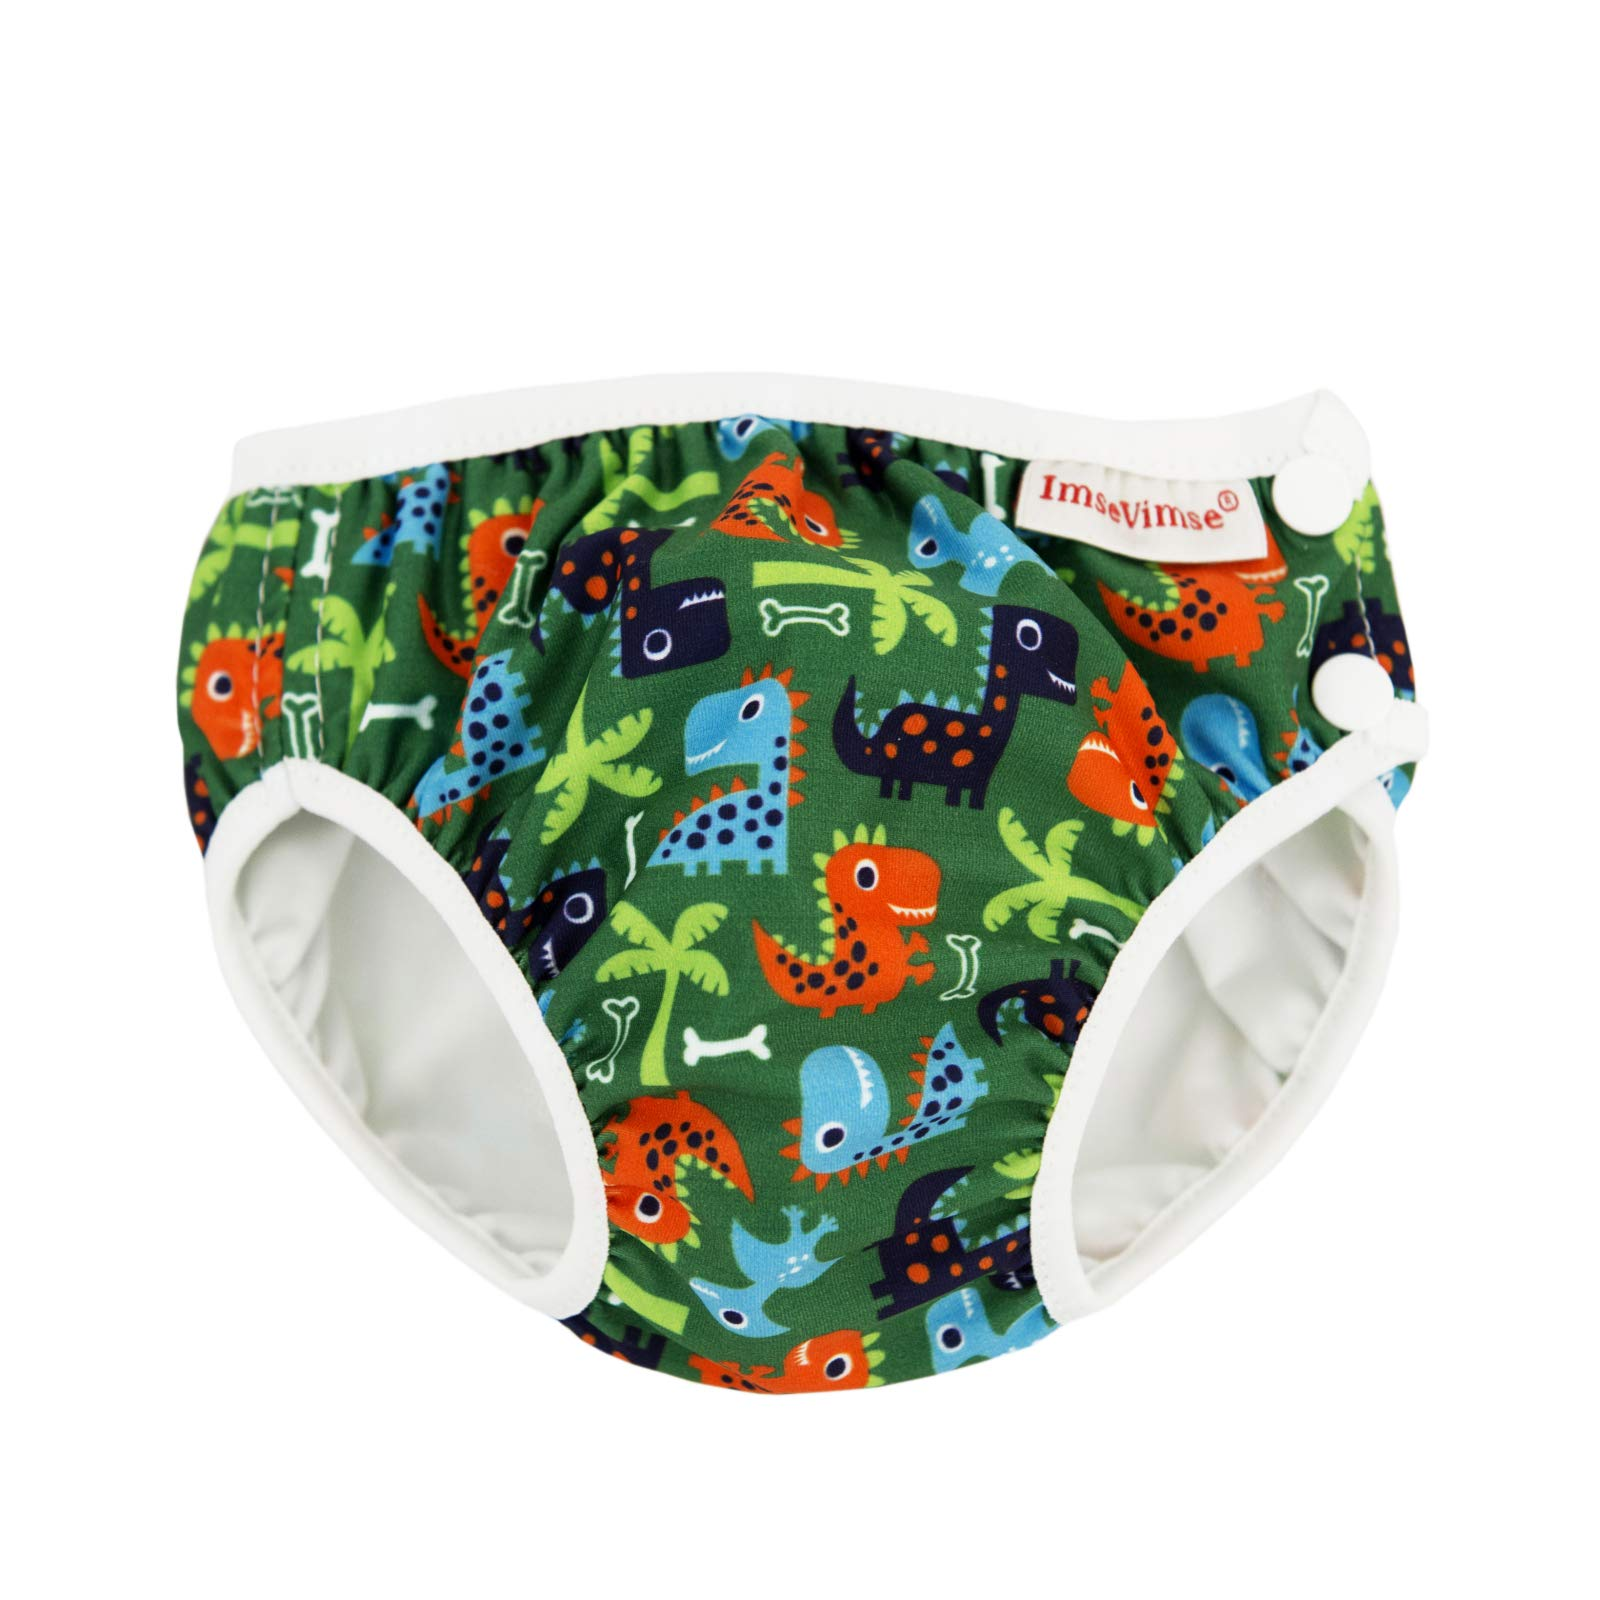 ImseVimse Eco Friendly Reusable Swim Diaper Made of Organic Cloth Sized for Infant to Toddler Boys (Green Dino, XL 18-24M, 2T (24-31 lbs))